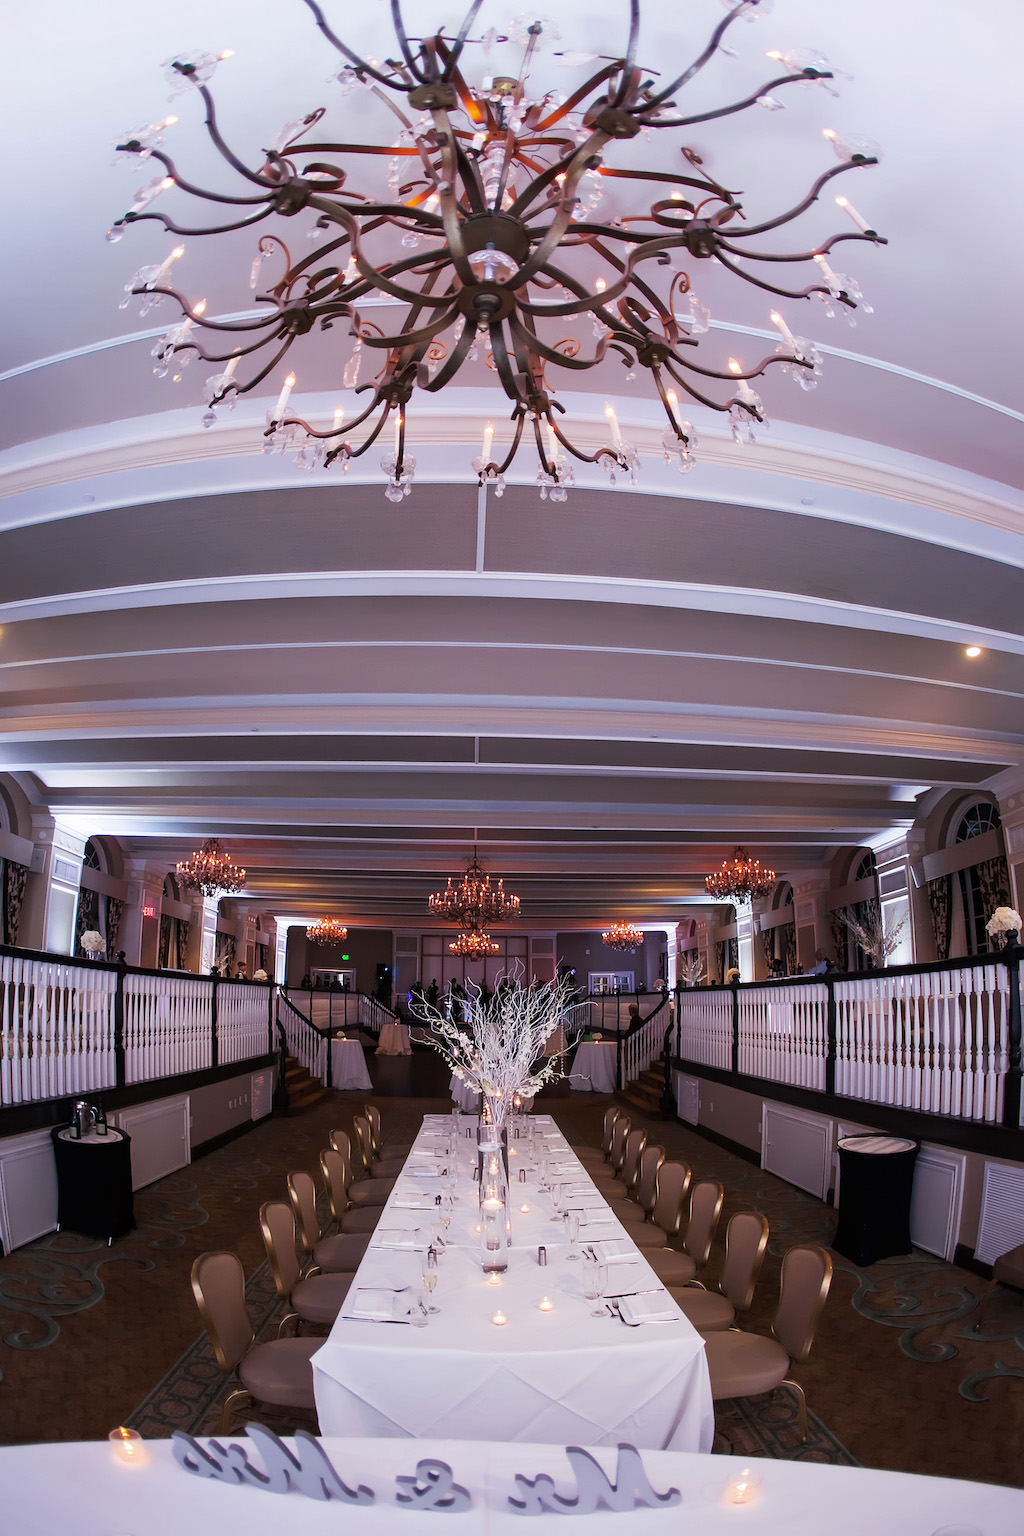 Winter White and Silver Black Tie Hotel Ballroom Wedding Reception with Long Feasting Table with Tall White Branch Centerpiece   Tampa Bay Historic Wedding Reception Venue The Don Cesar